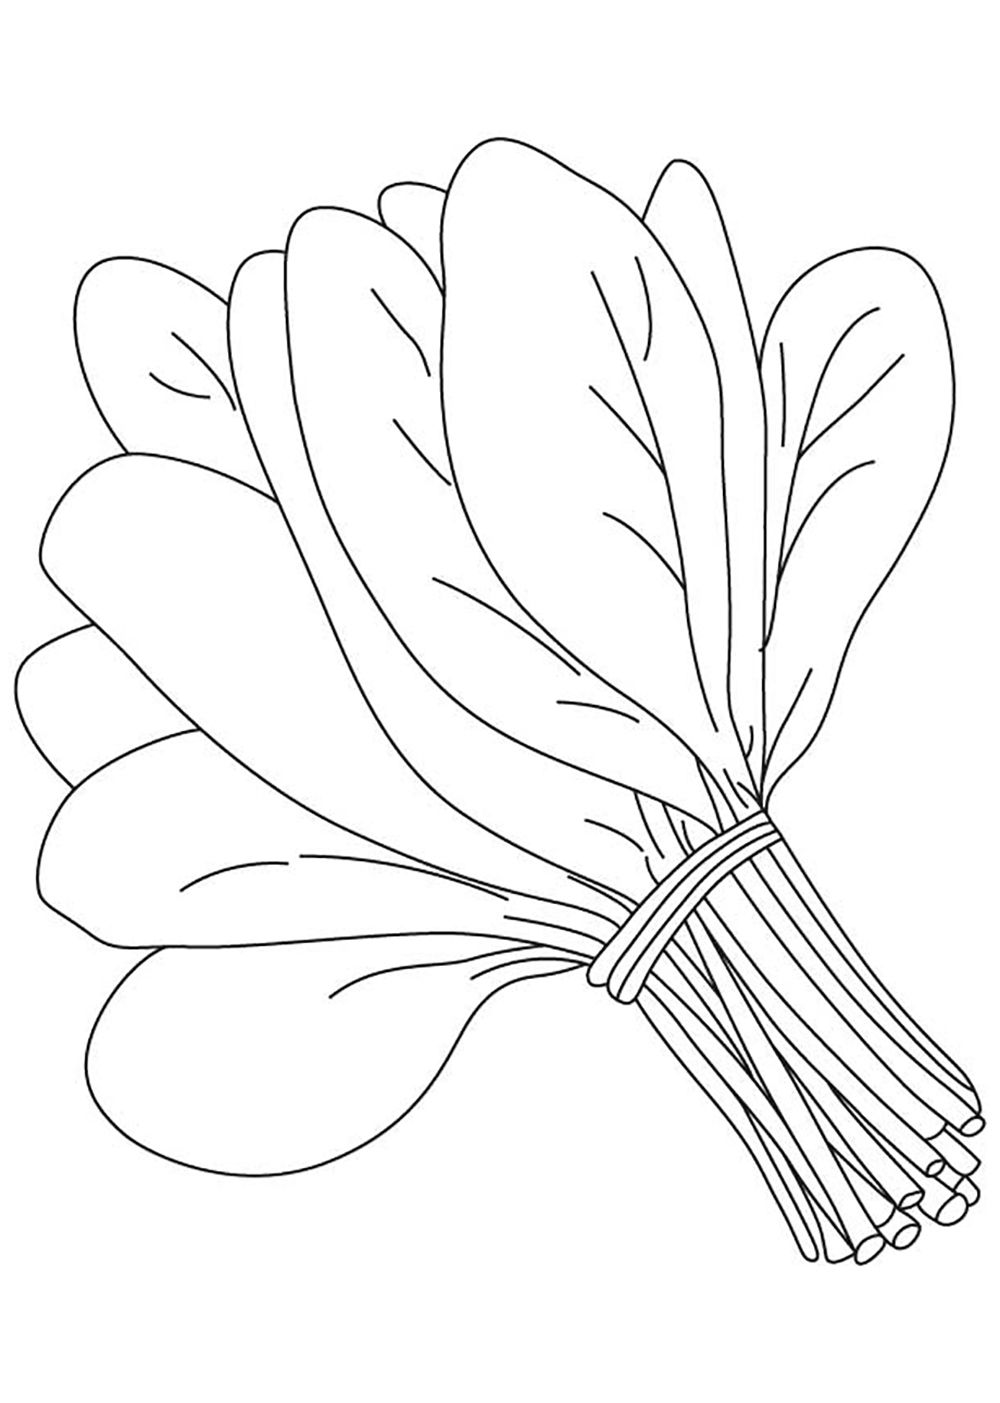 spinach vegetable vegetable coloring pages pinterest